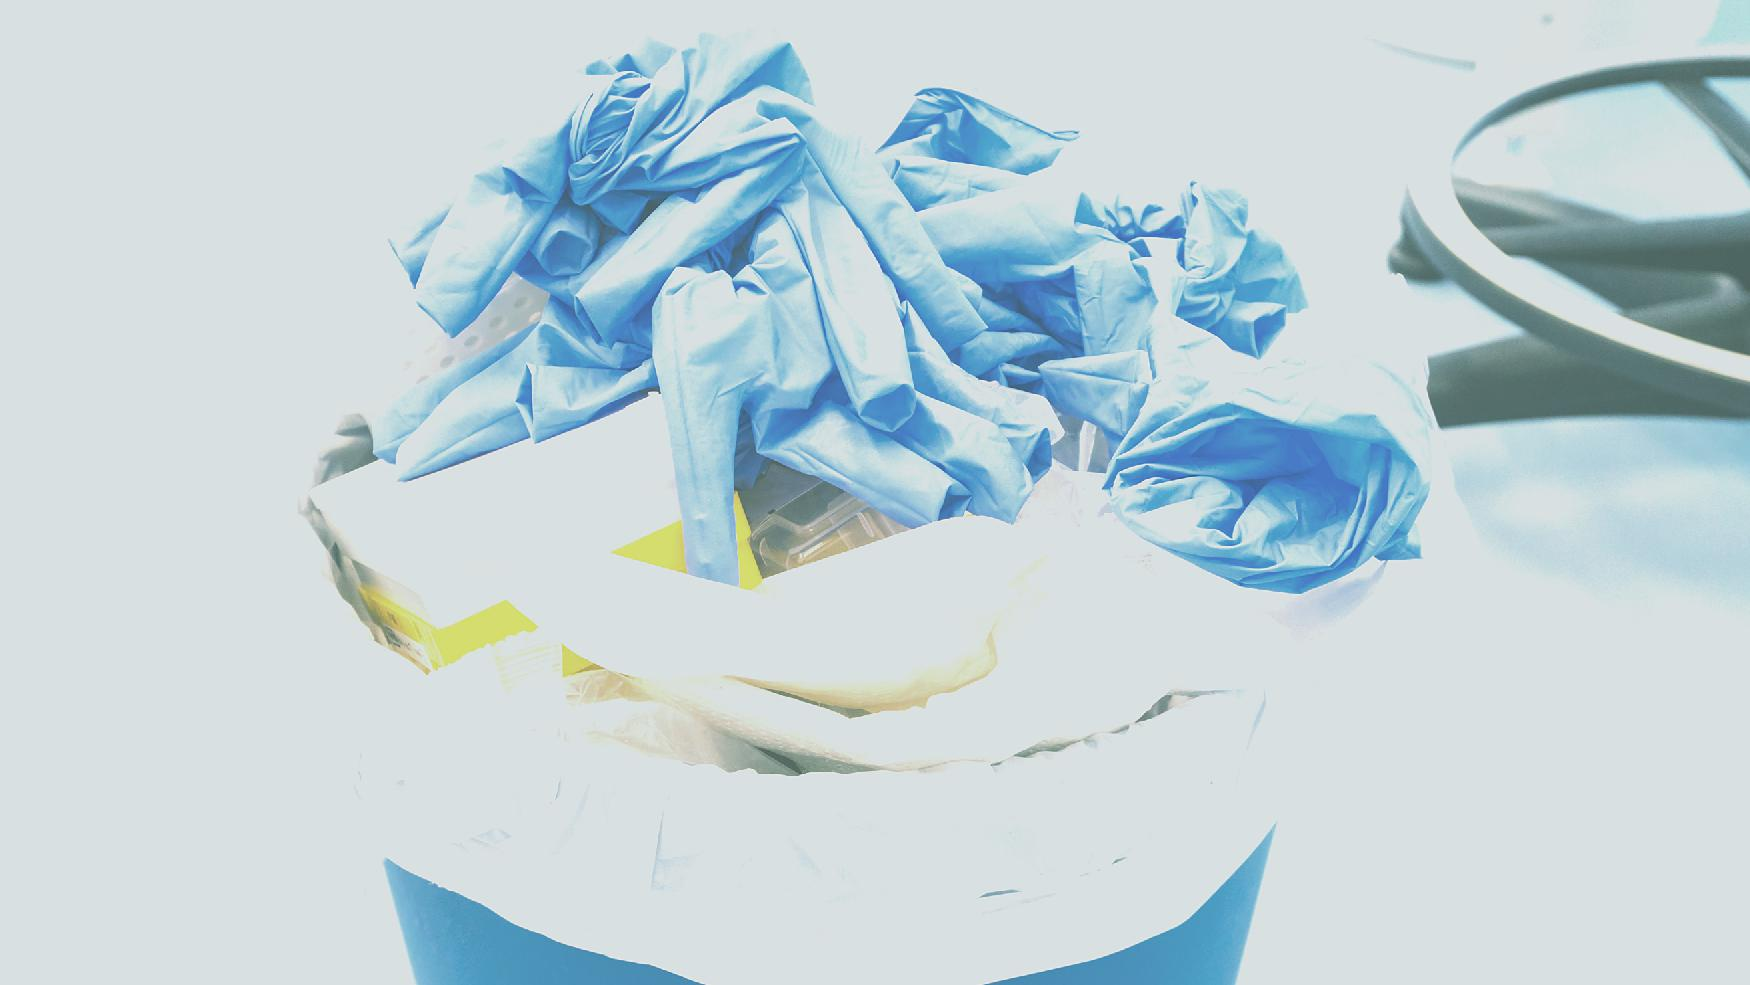 Category A Waste Management Tips for Ebola Virus Disease